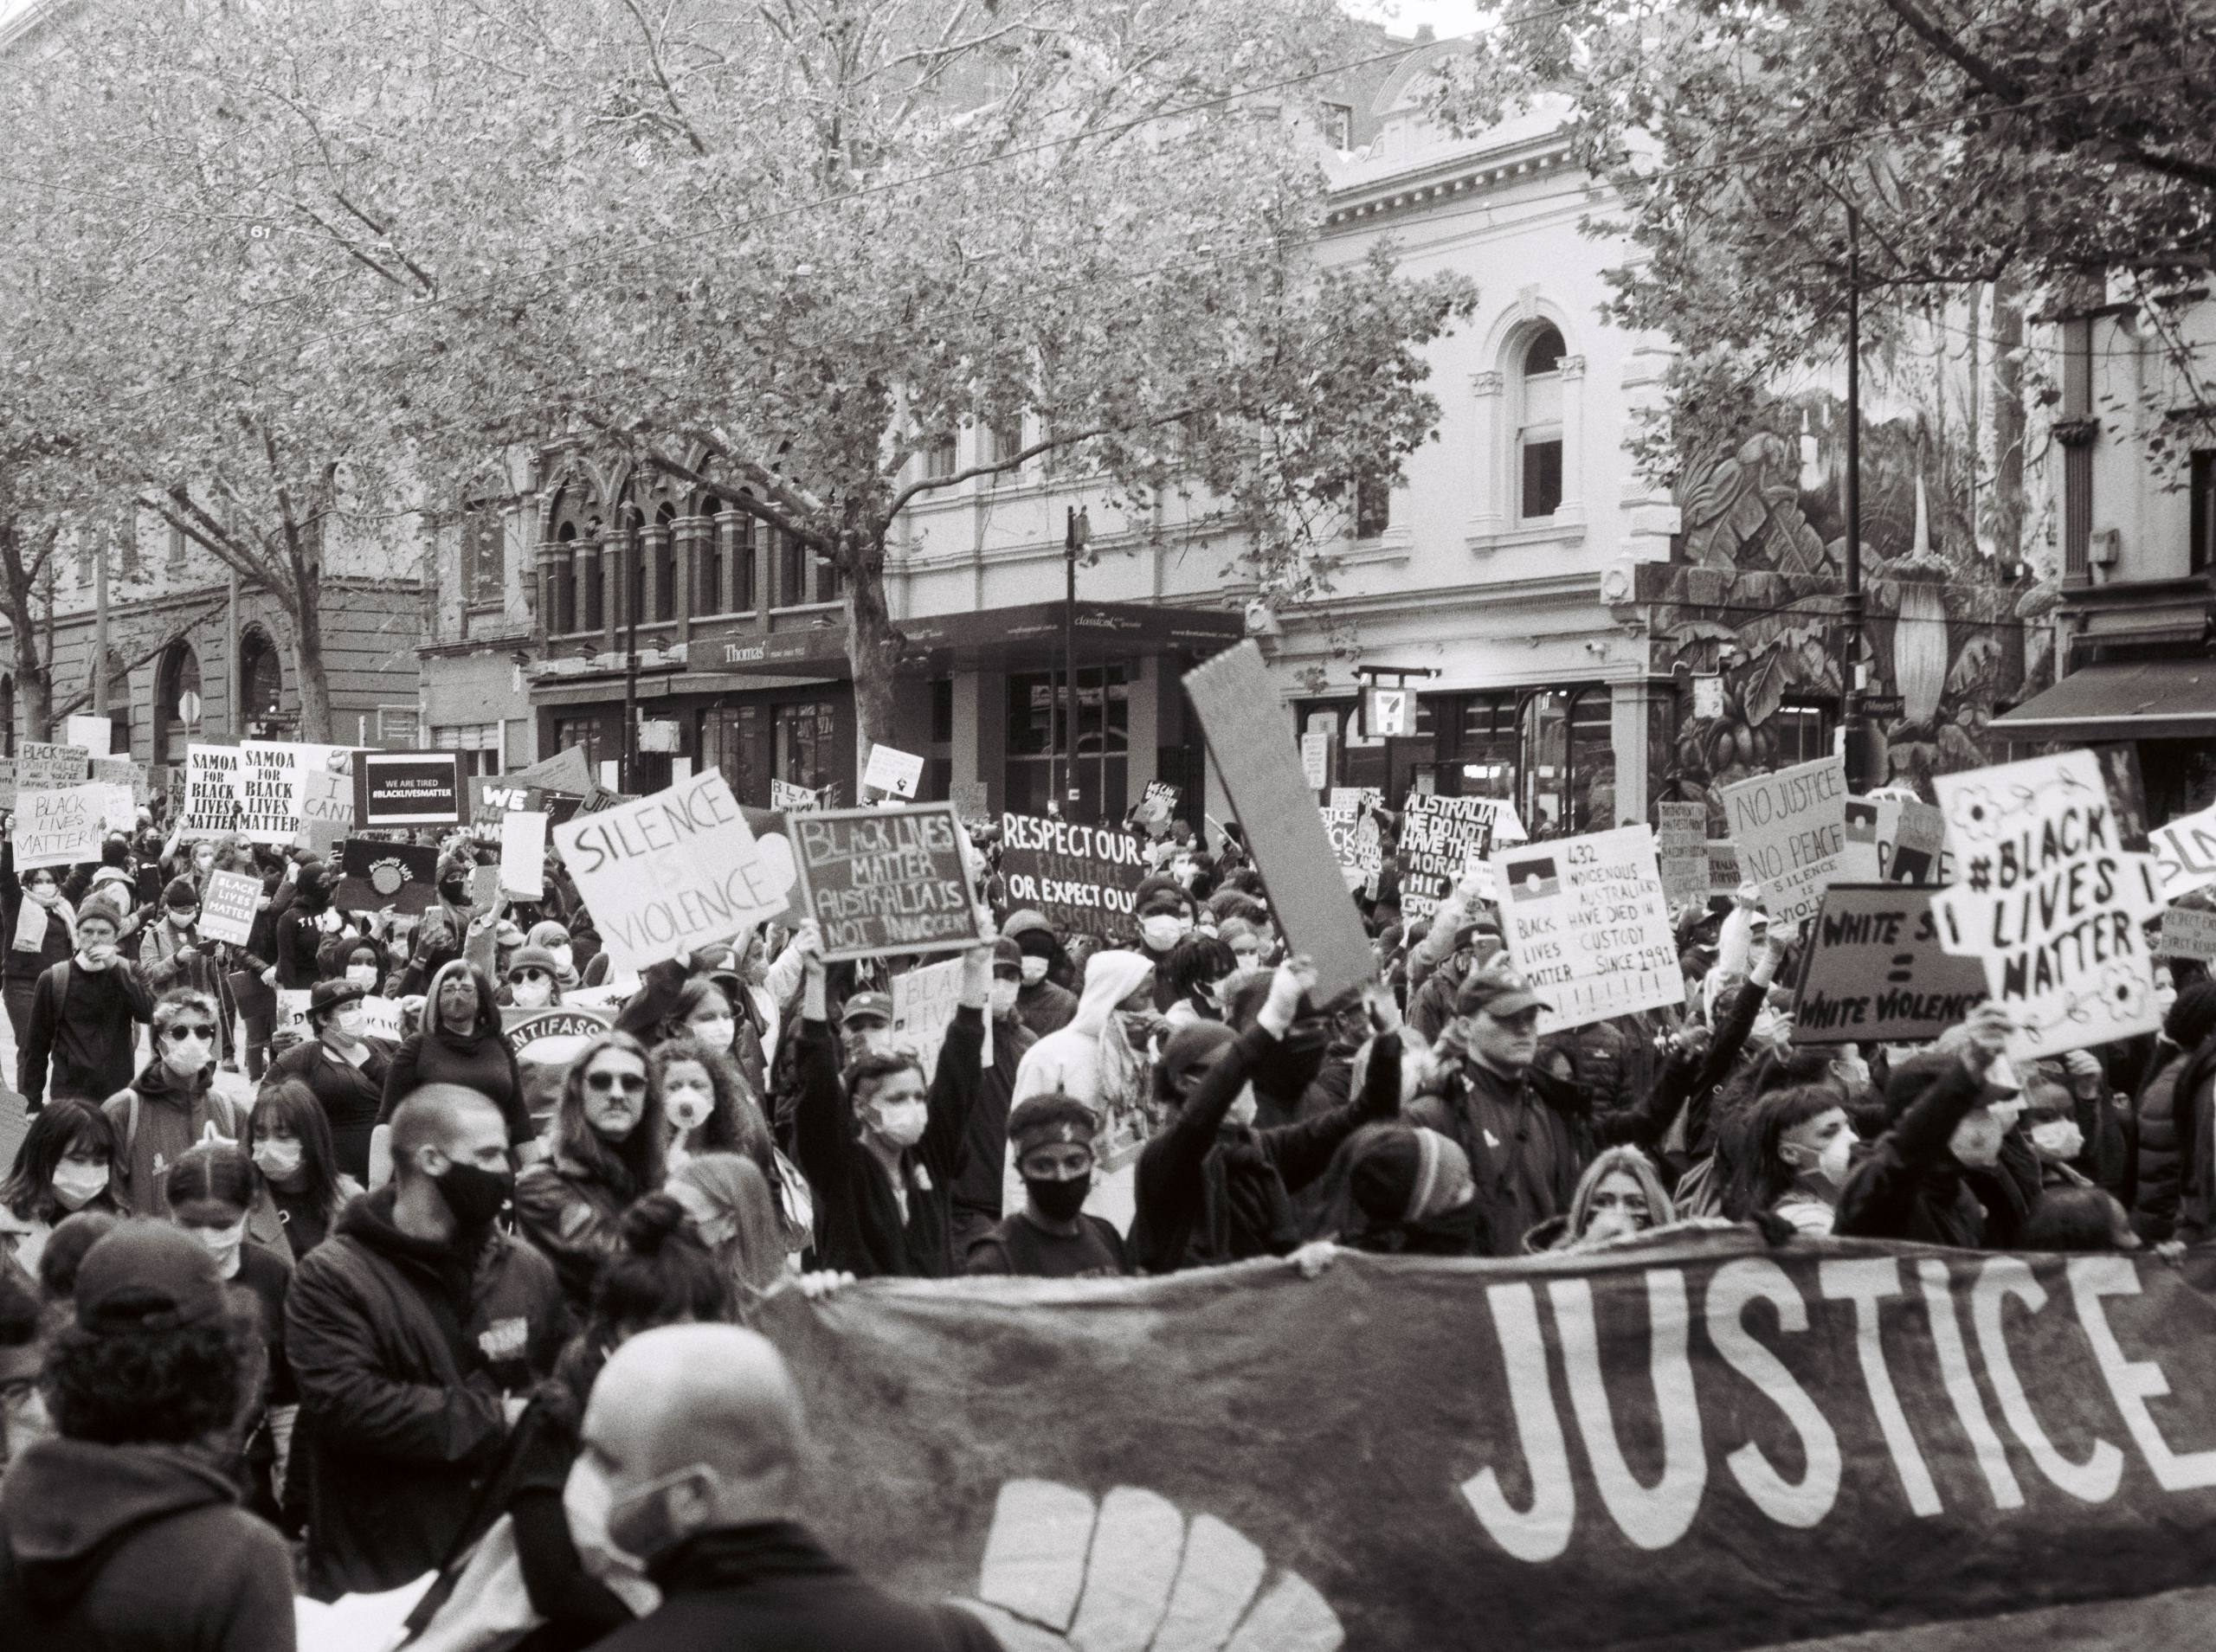 Black and white image of Black lives matter protest in Melbourne with big group of people holding signs. Buildings and trees in background.